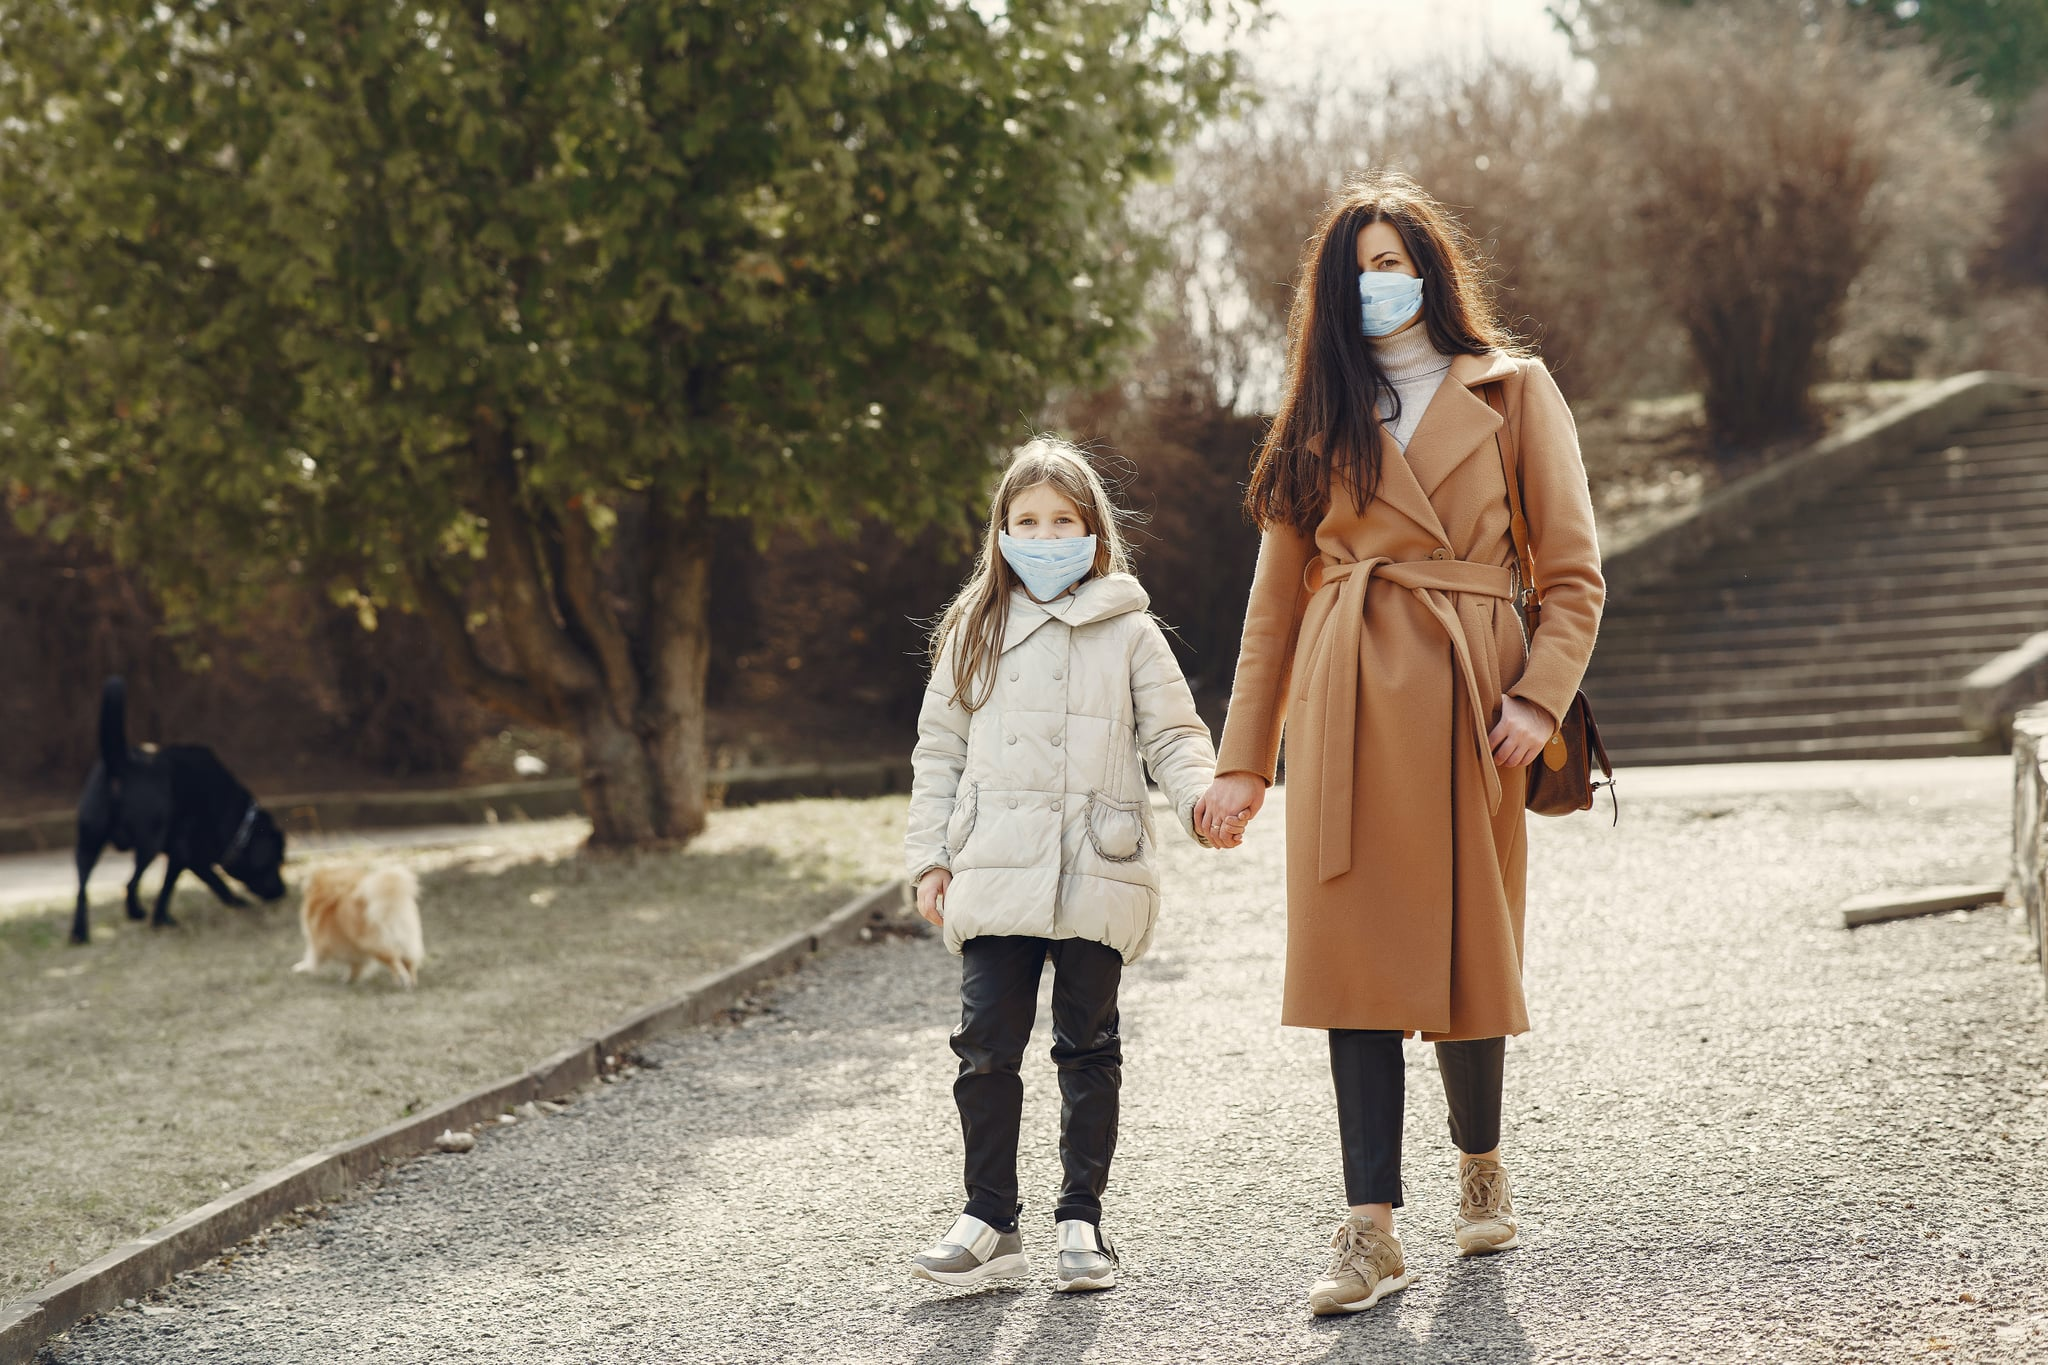 tmp_od7hiO_b20b9718d619358a_mother-with-daughter-in-face-masks-walking-in-park-4000622.jpg